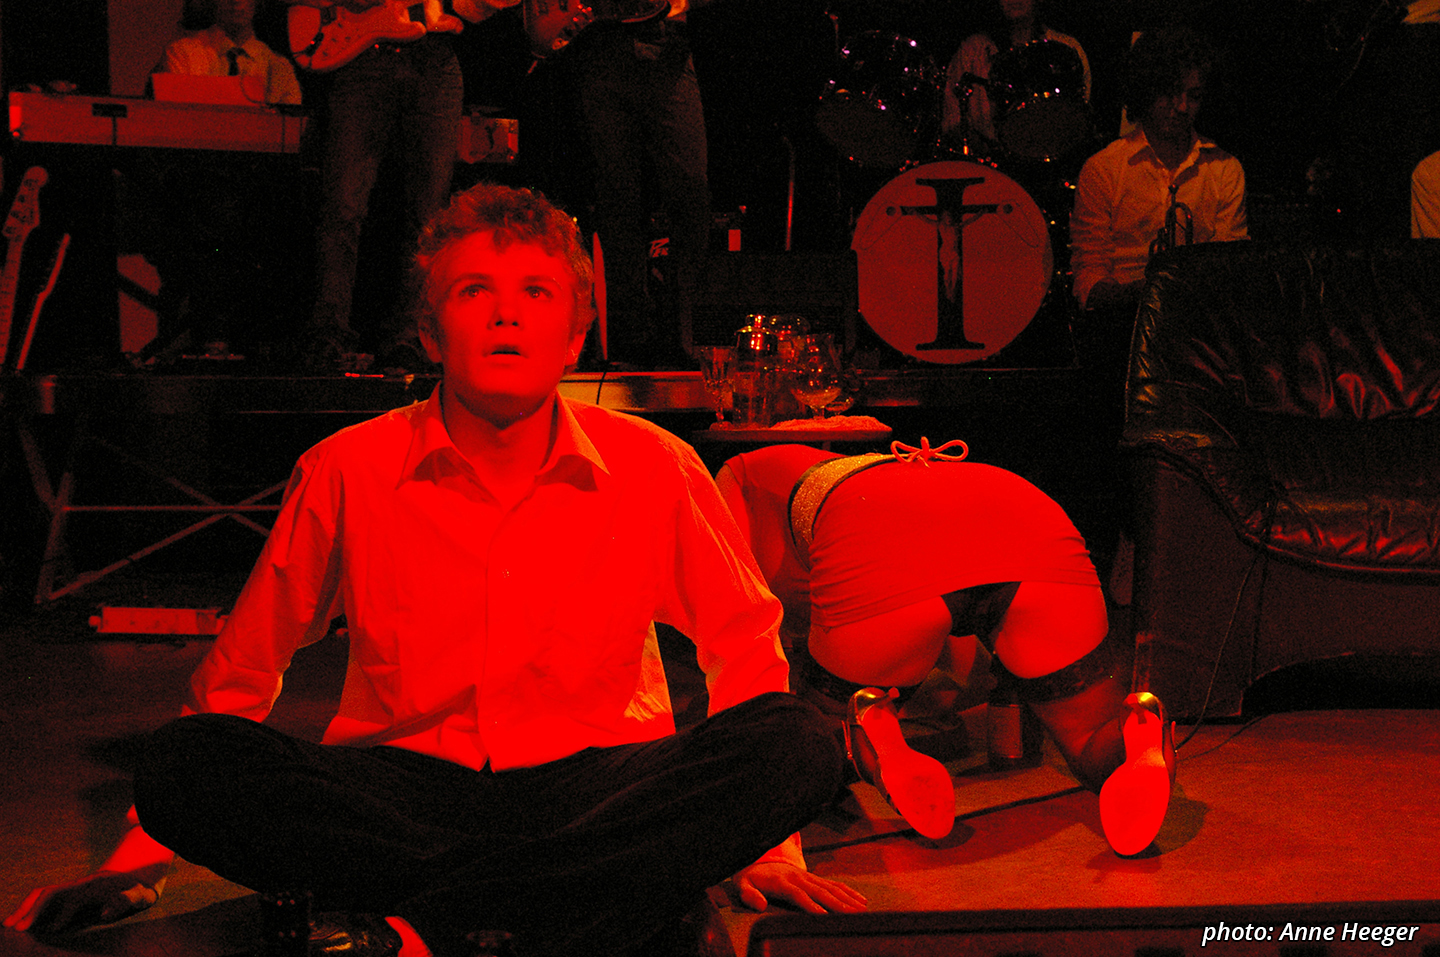 Picture featuring a character (Tommy) dressed in a white shirt and dark pants, sitting cross-legged staring up and away from the camera. Both his hands are on the floor. Right behind him we see a character (Acid Queen) dressed in stockings, a red and gold dress and gold patent stilettos. She's turned with her back to the camera, positioned on all fours, exposing her black underpants.